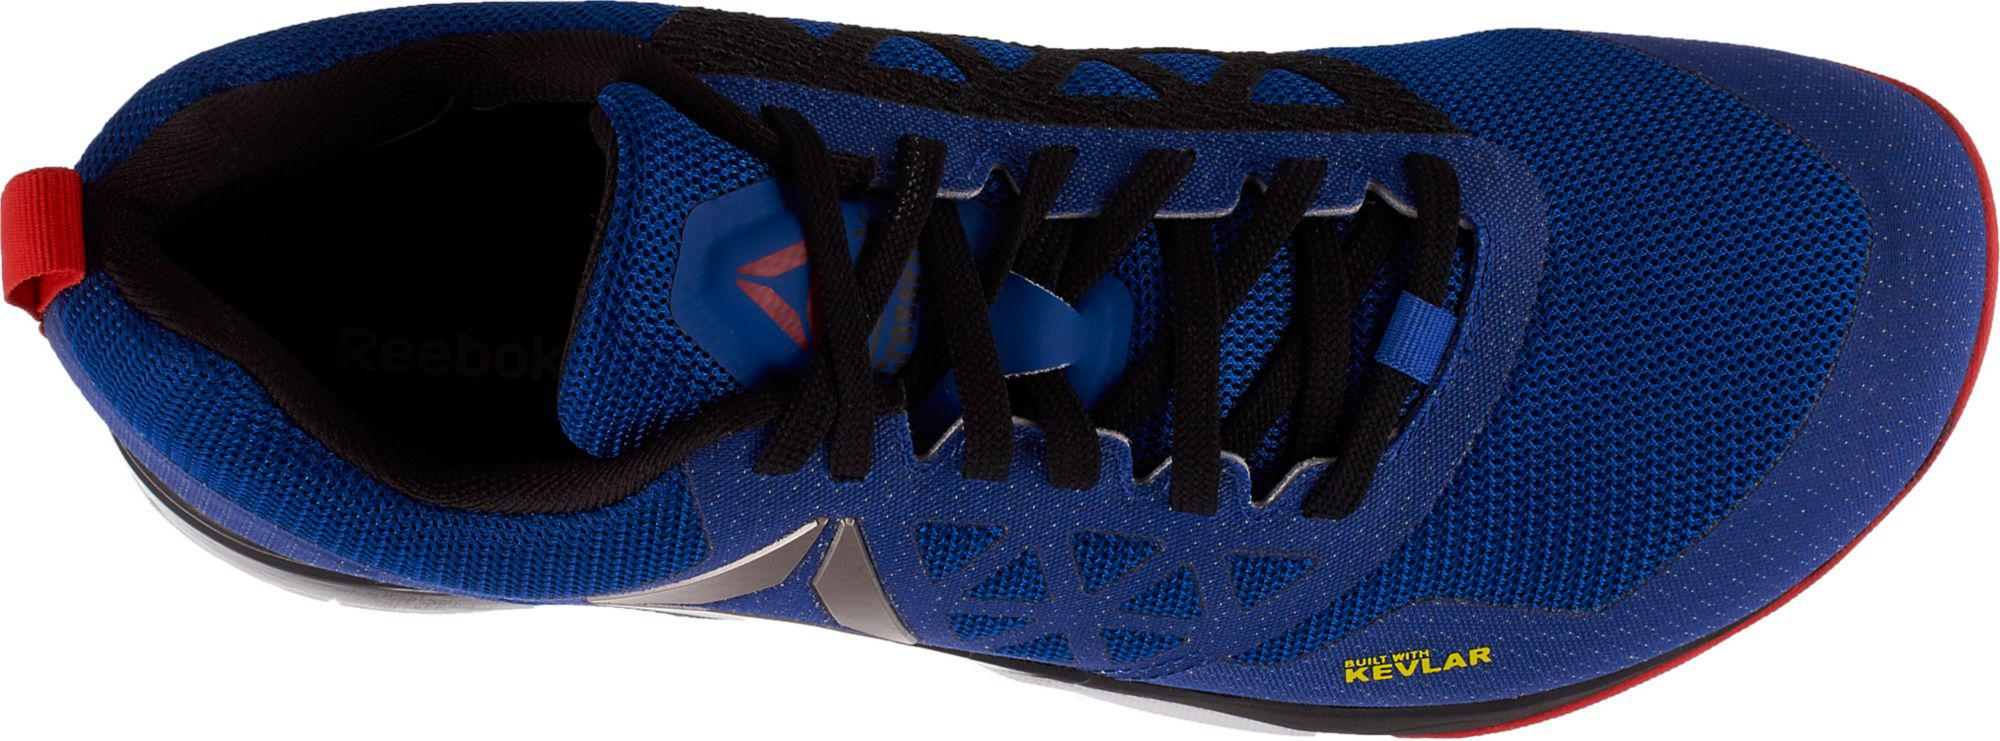 Lyst - Reebok Crossfit Nano 6.0 Training Shoes in Blue for Men a286956e6